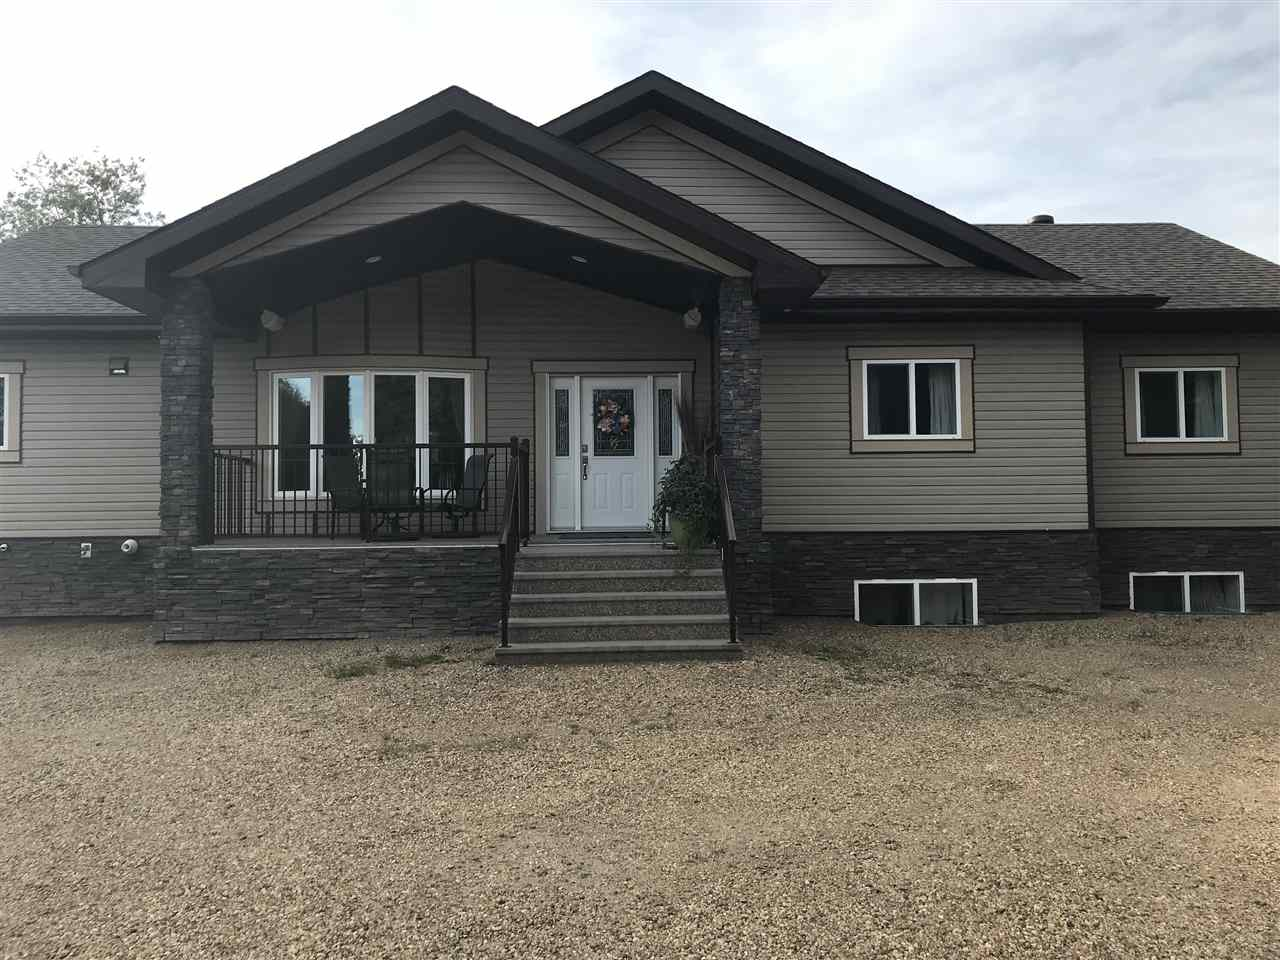 MLS® listing #E4171068 for sale located at 53475  RGE RD 231 clover bar road